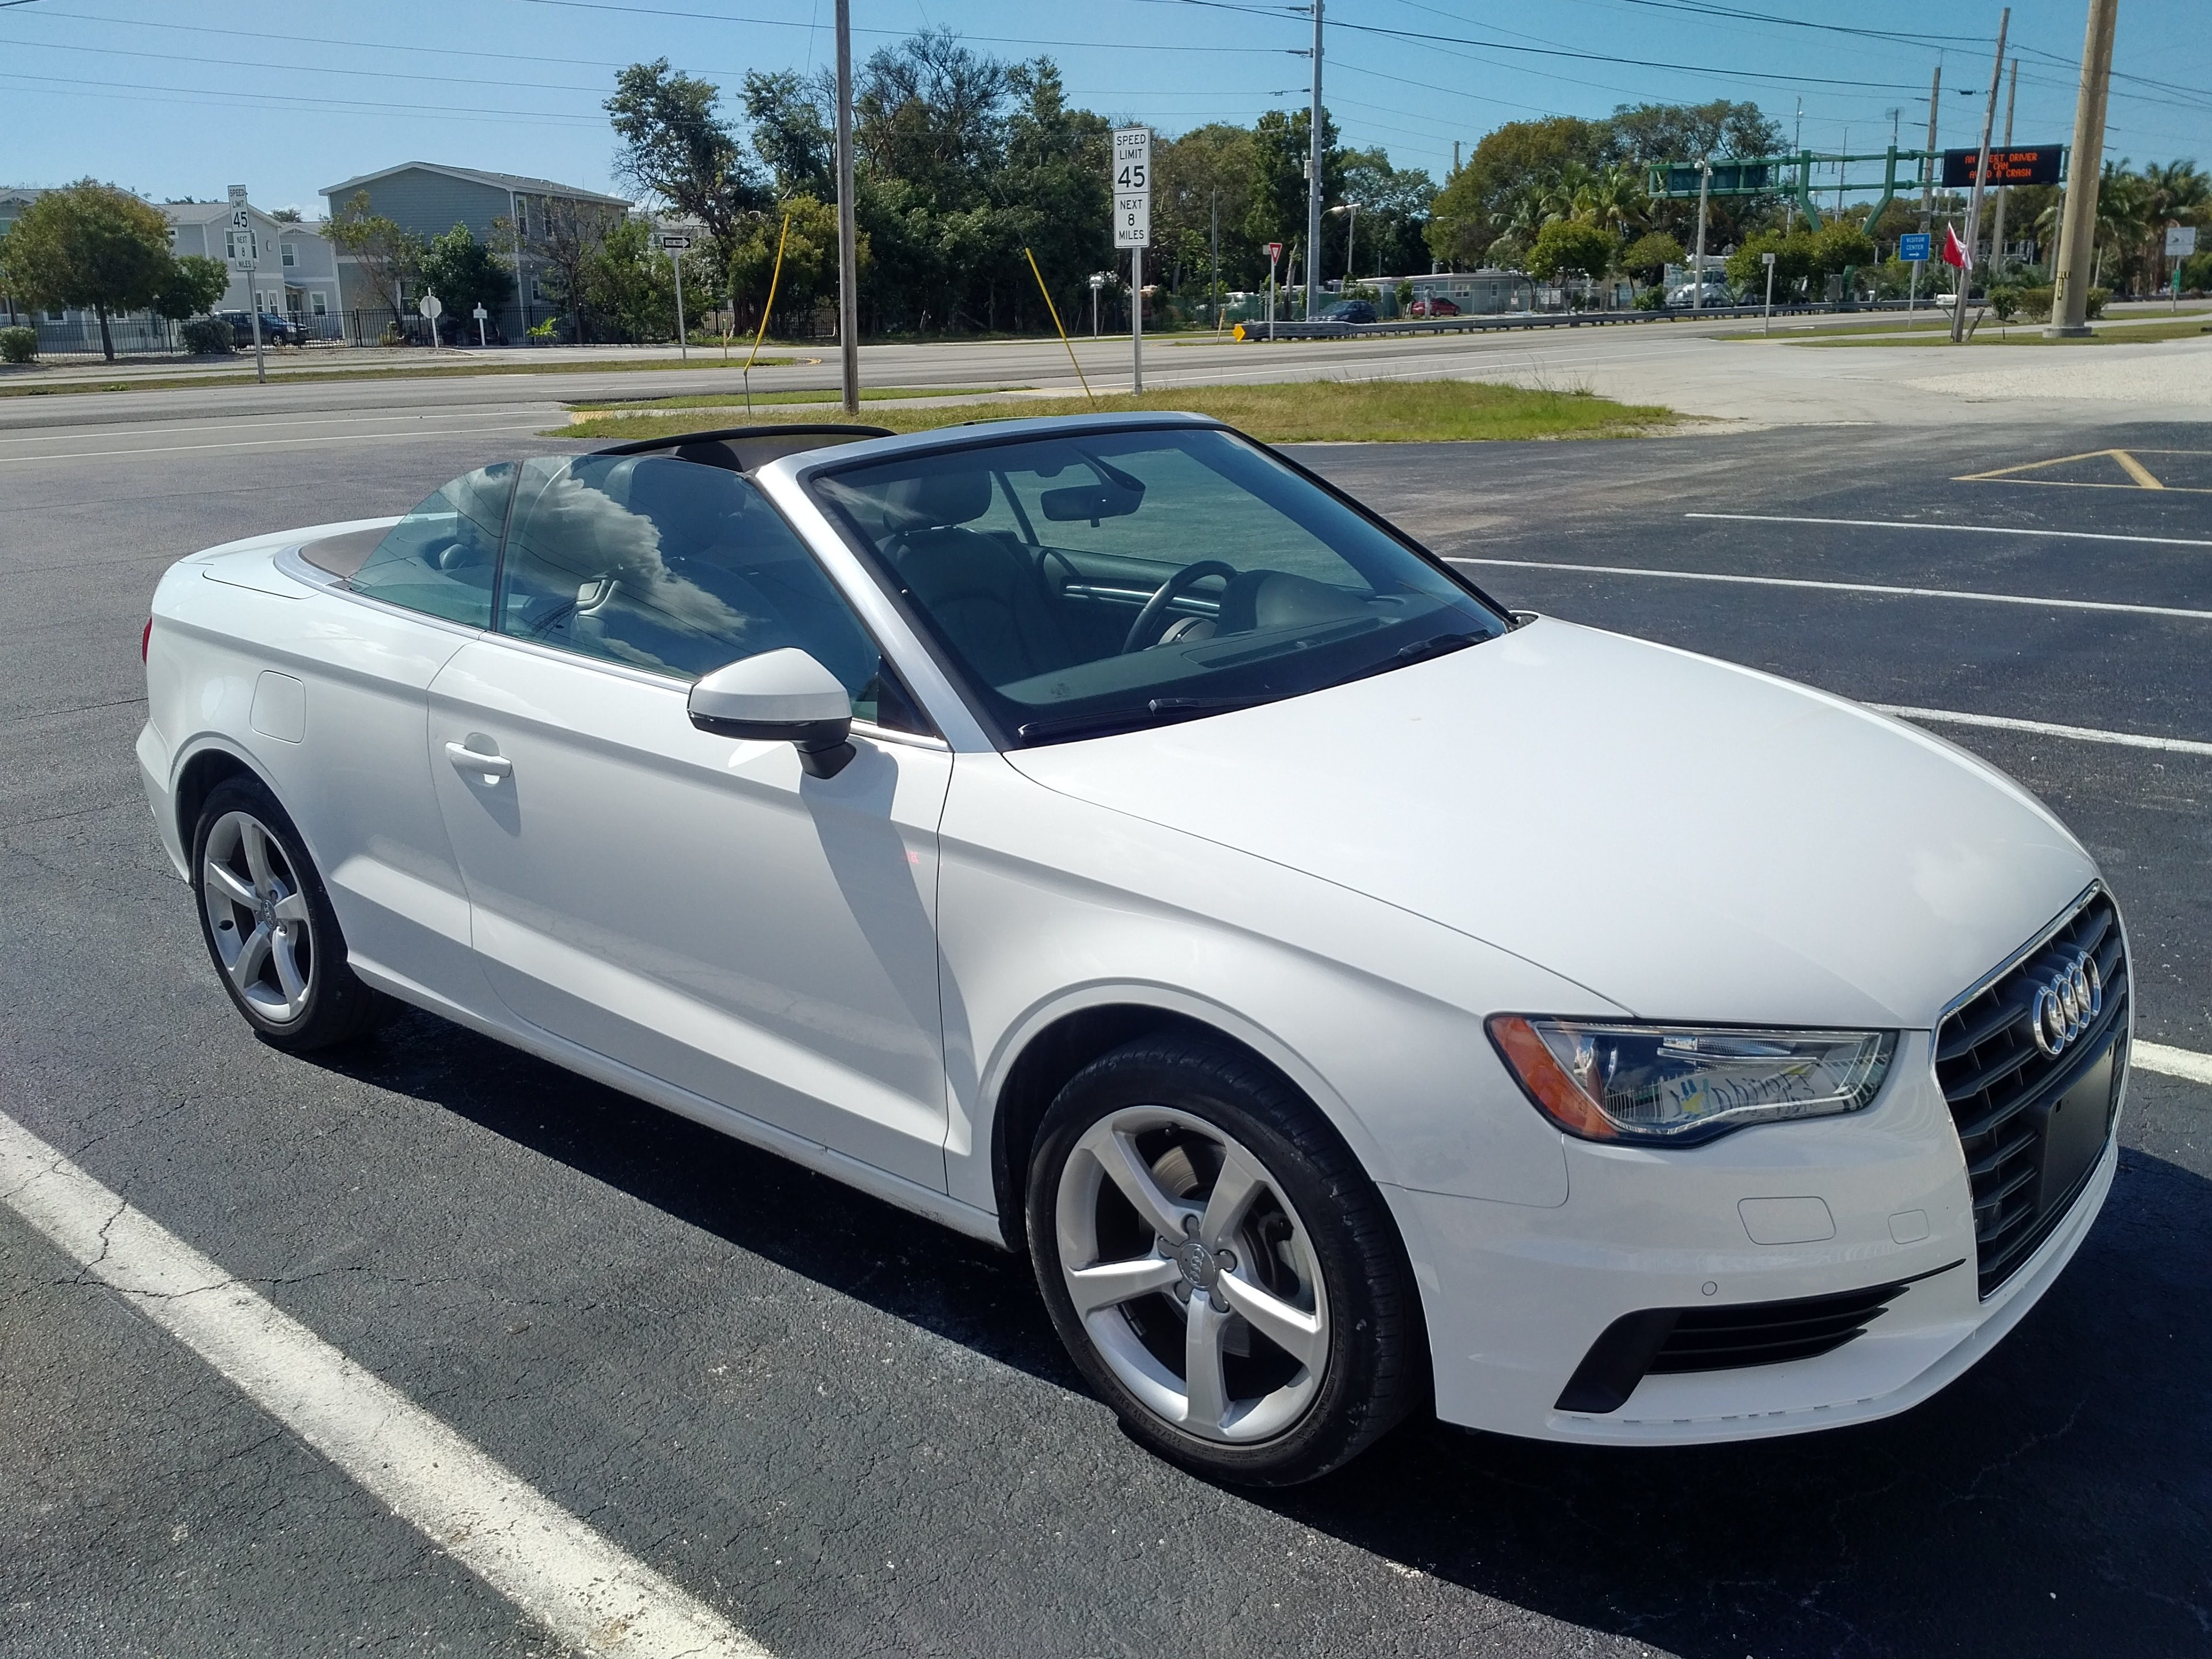 Convertible Center Avis Miami No Vice My Sixt Rental Car Experience The Milelion